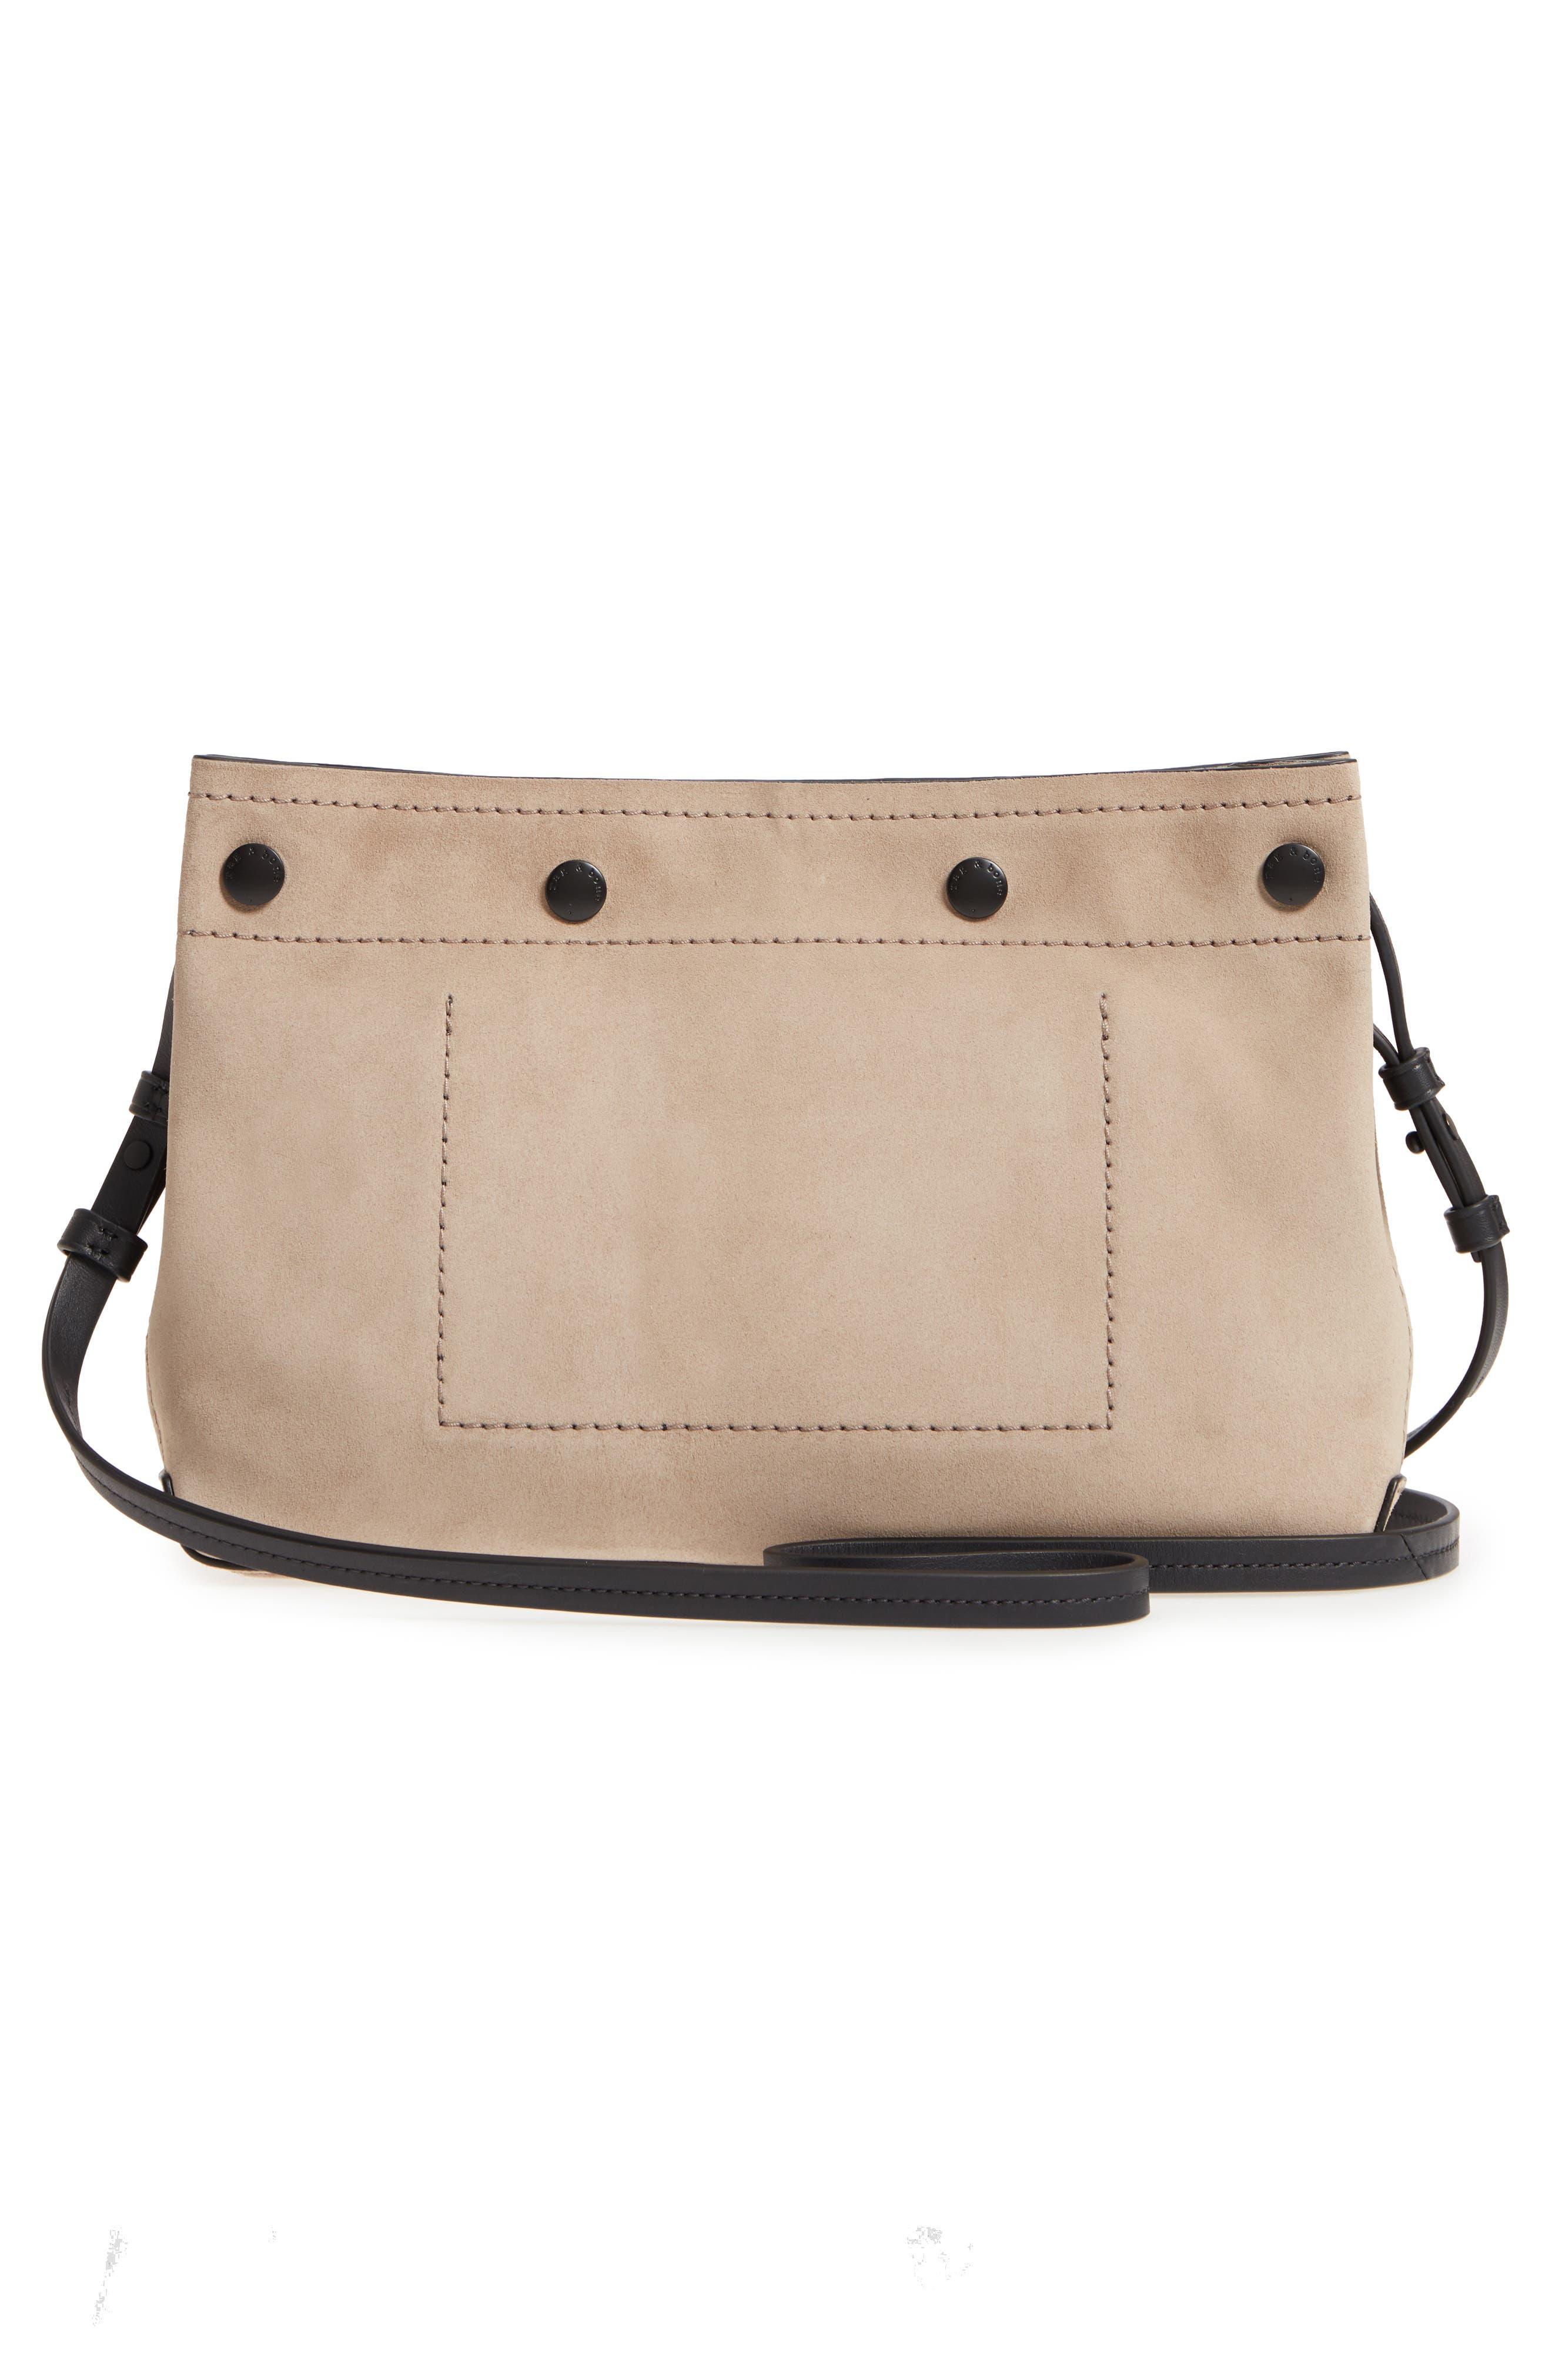 Compass Leather Crossbody Bag,                             Alternate thumbnail 3, color,                             WARM GREY SUEDE